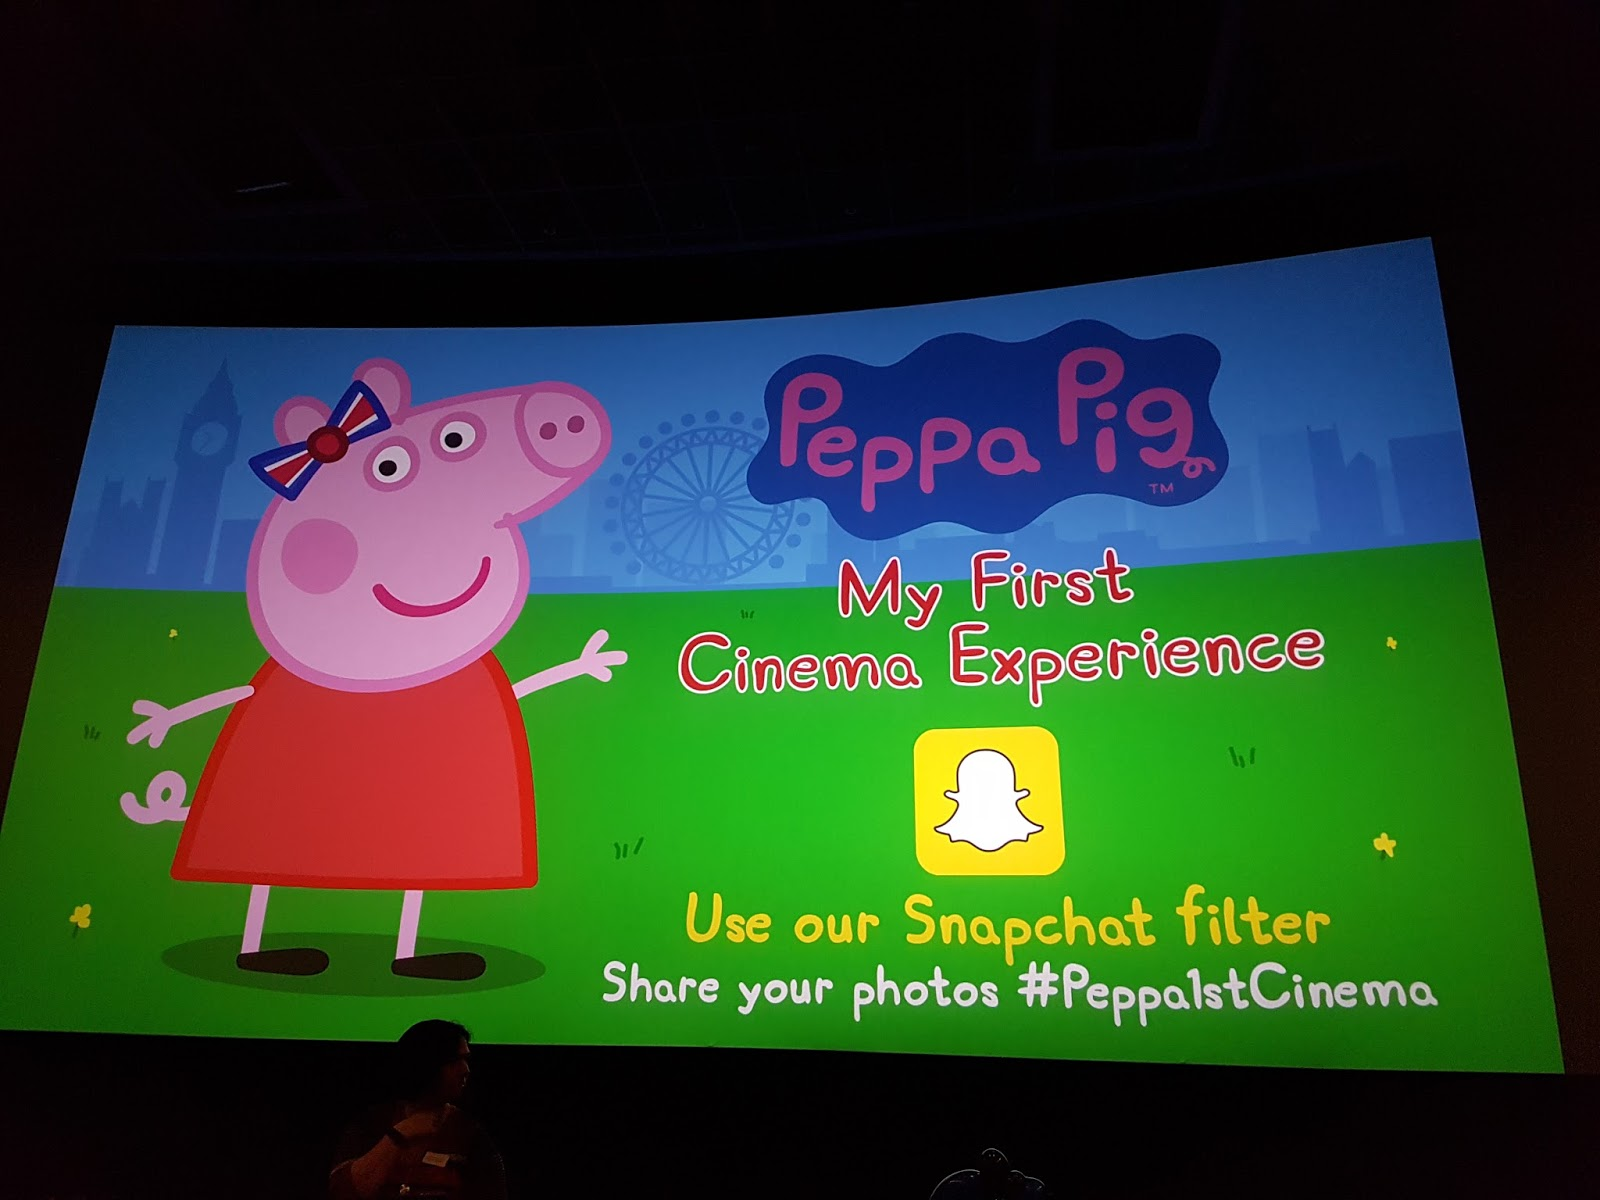 peppa pig film on screen